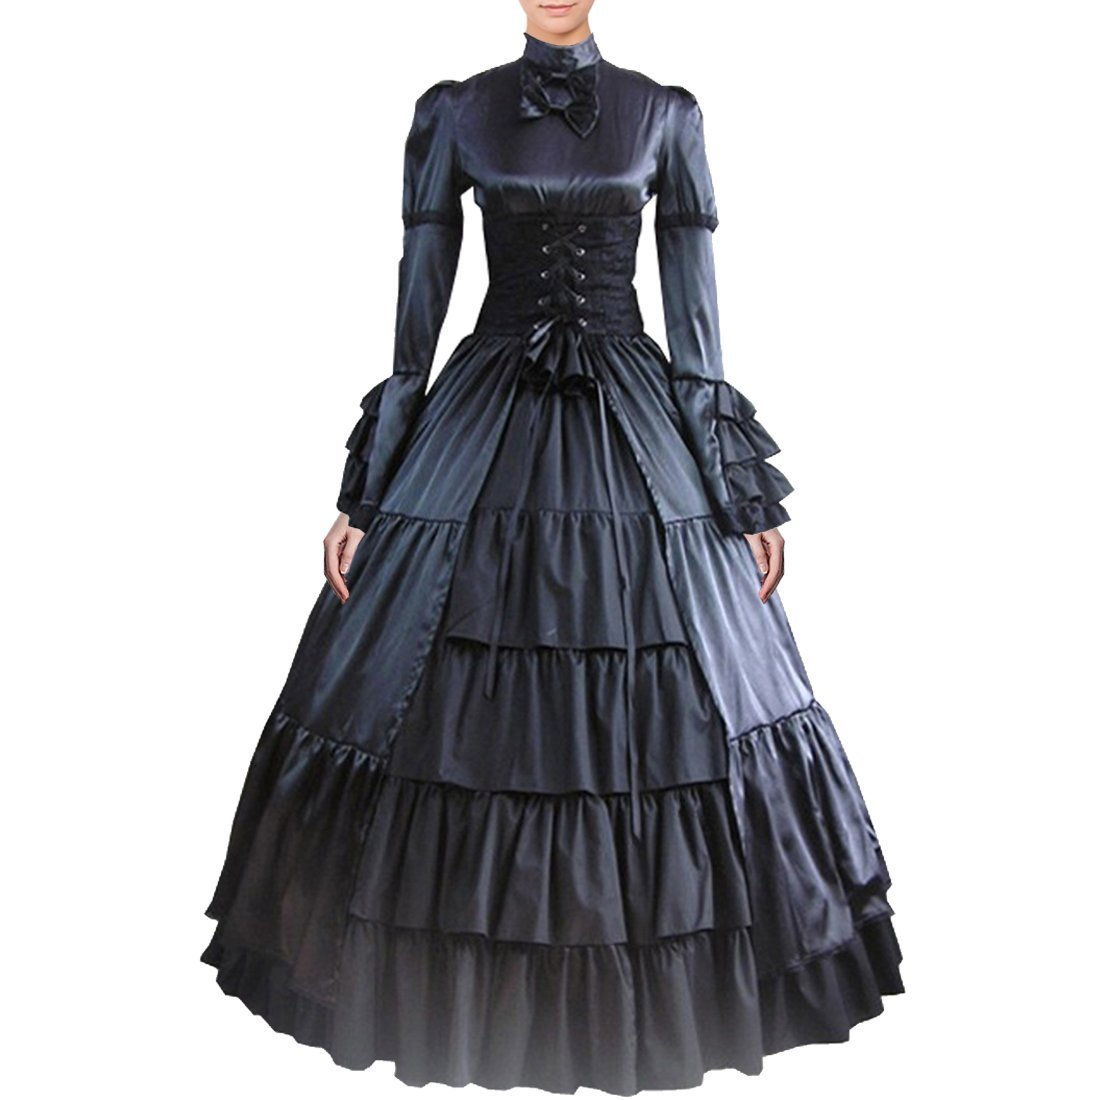 Amazon.com: Partiss Women Bowknot Stand Collar Gothic Victorian ...